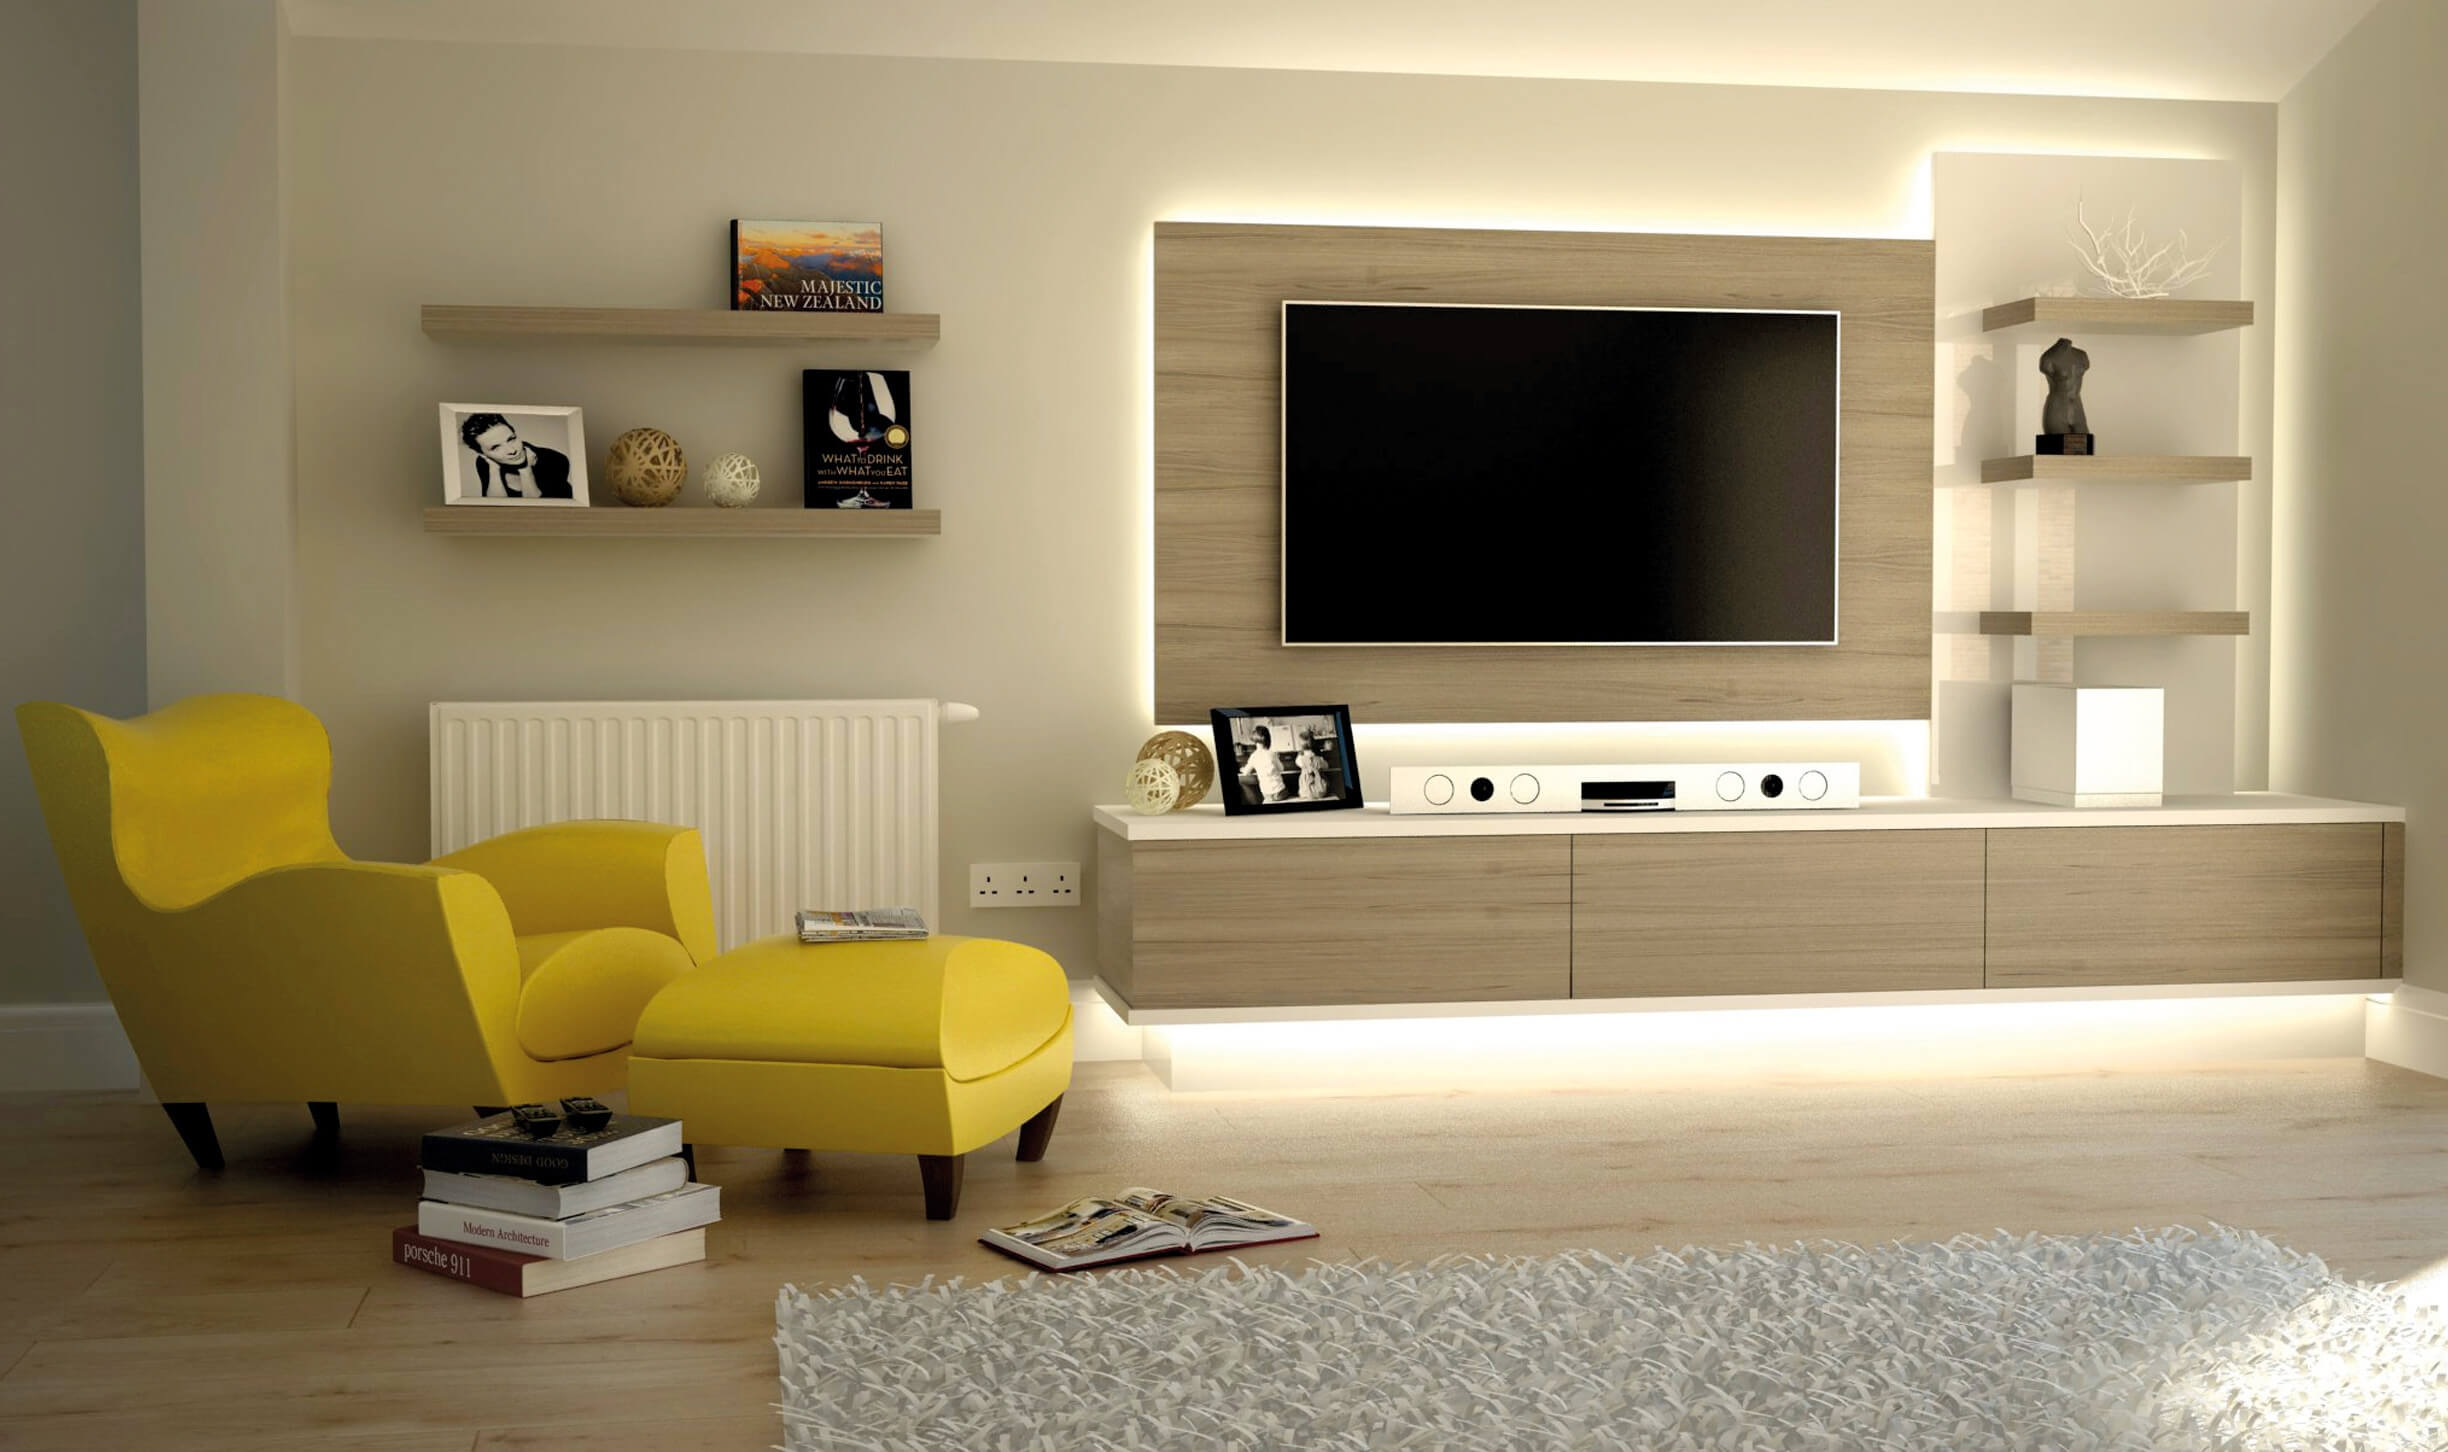 Bespoke Tv Cabinets Bookcases And Storage Units For Over 50 For Bespoke Tv Unit (#4 of 15)